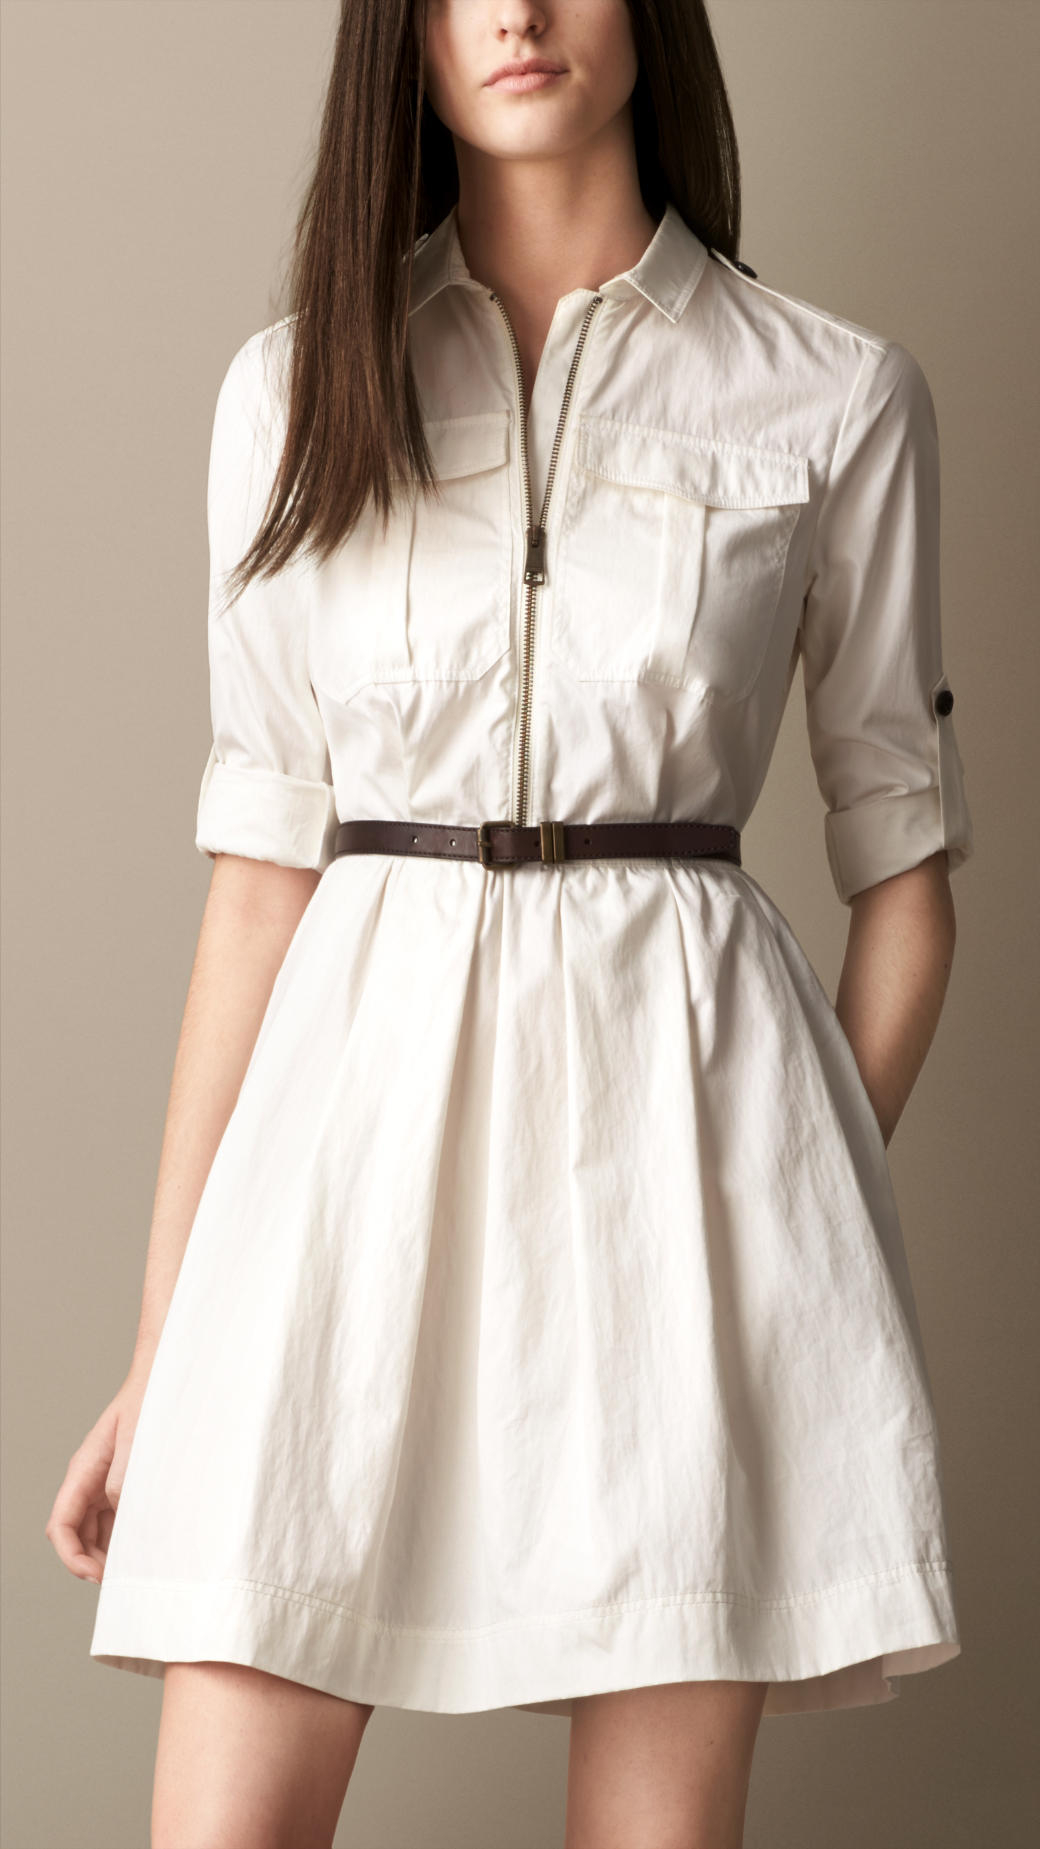 burberry heritage shirt dress with leather belt in white